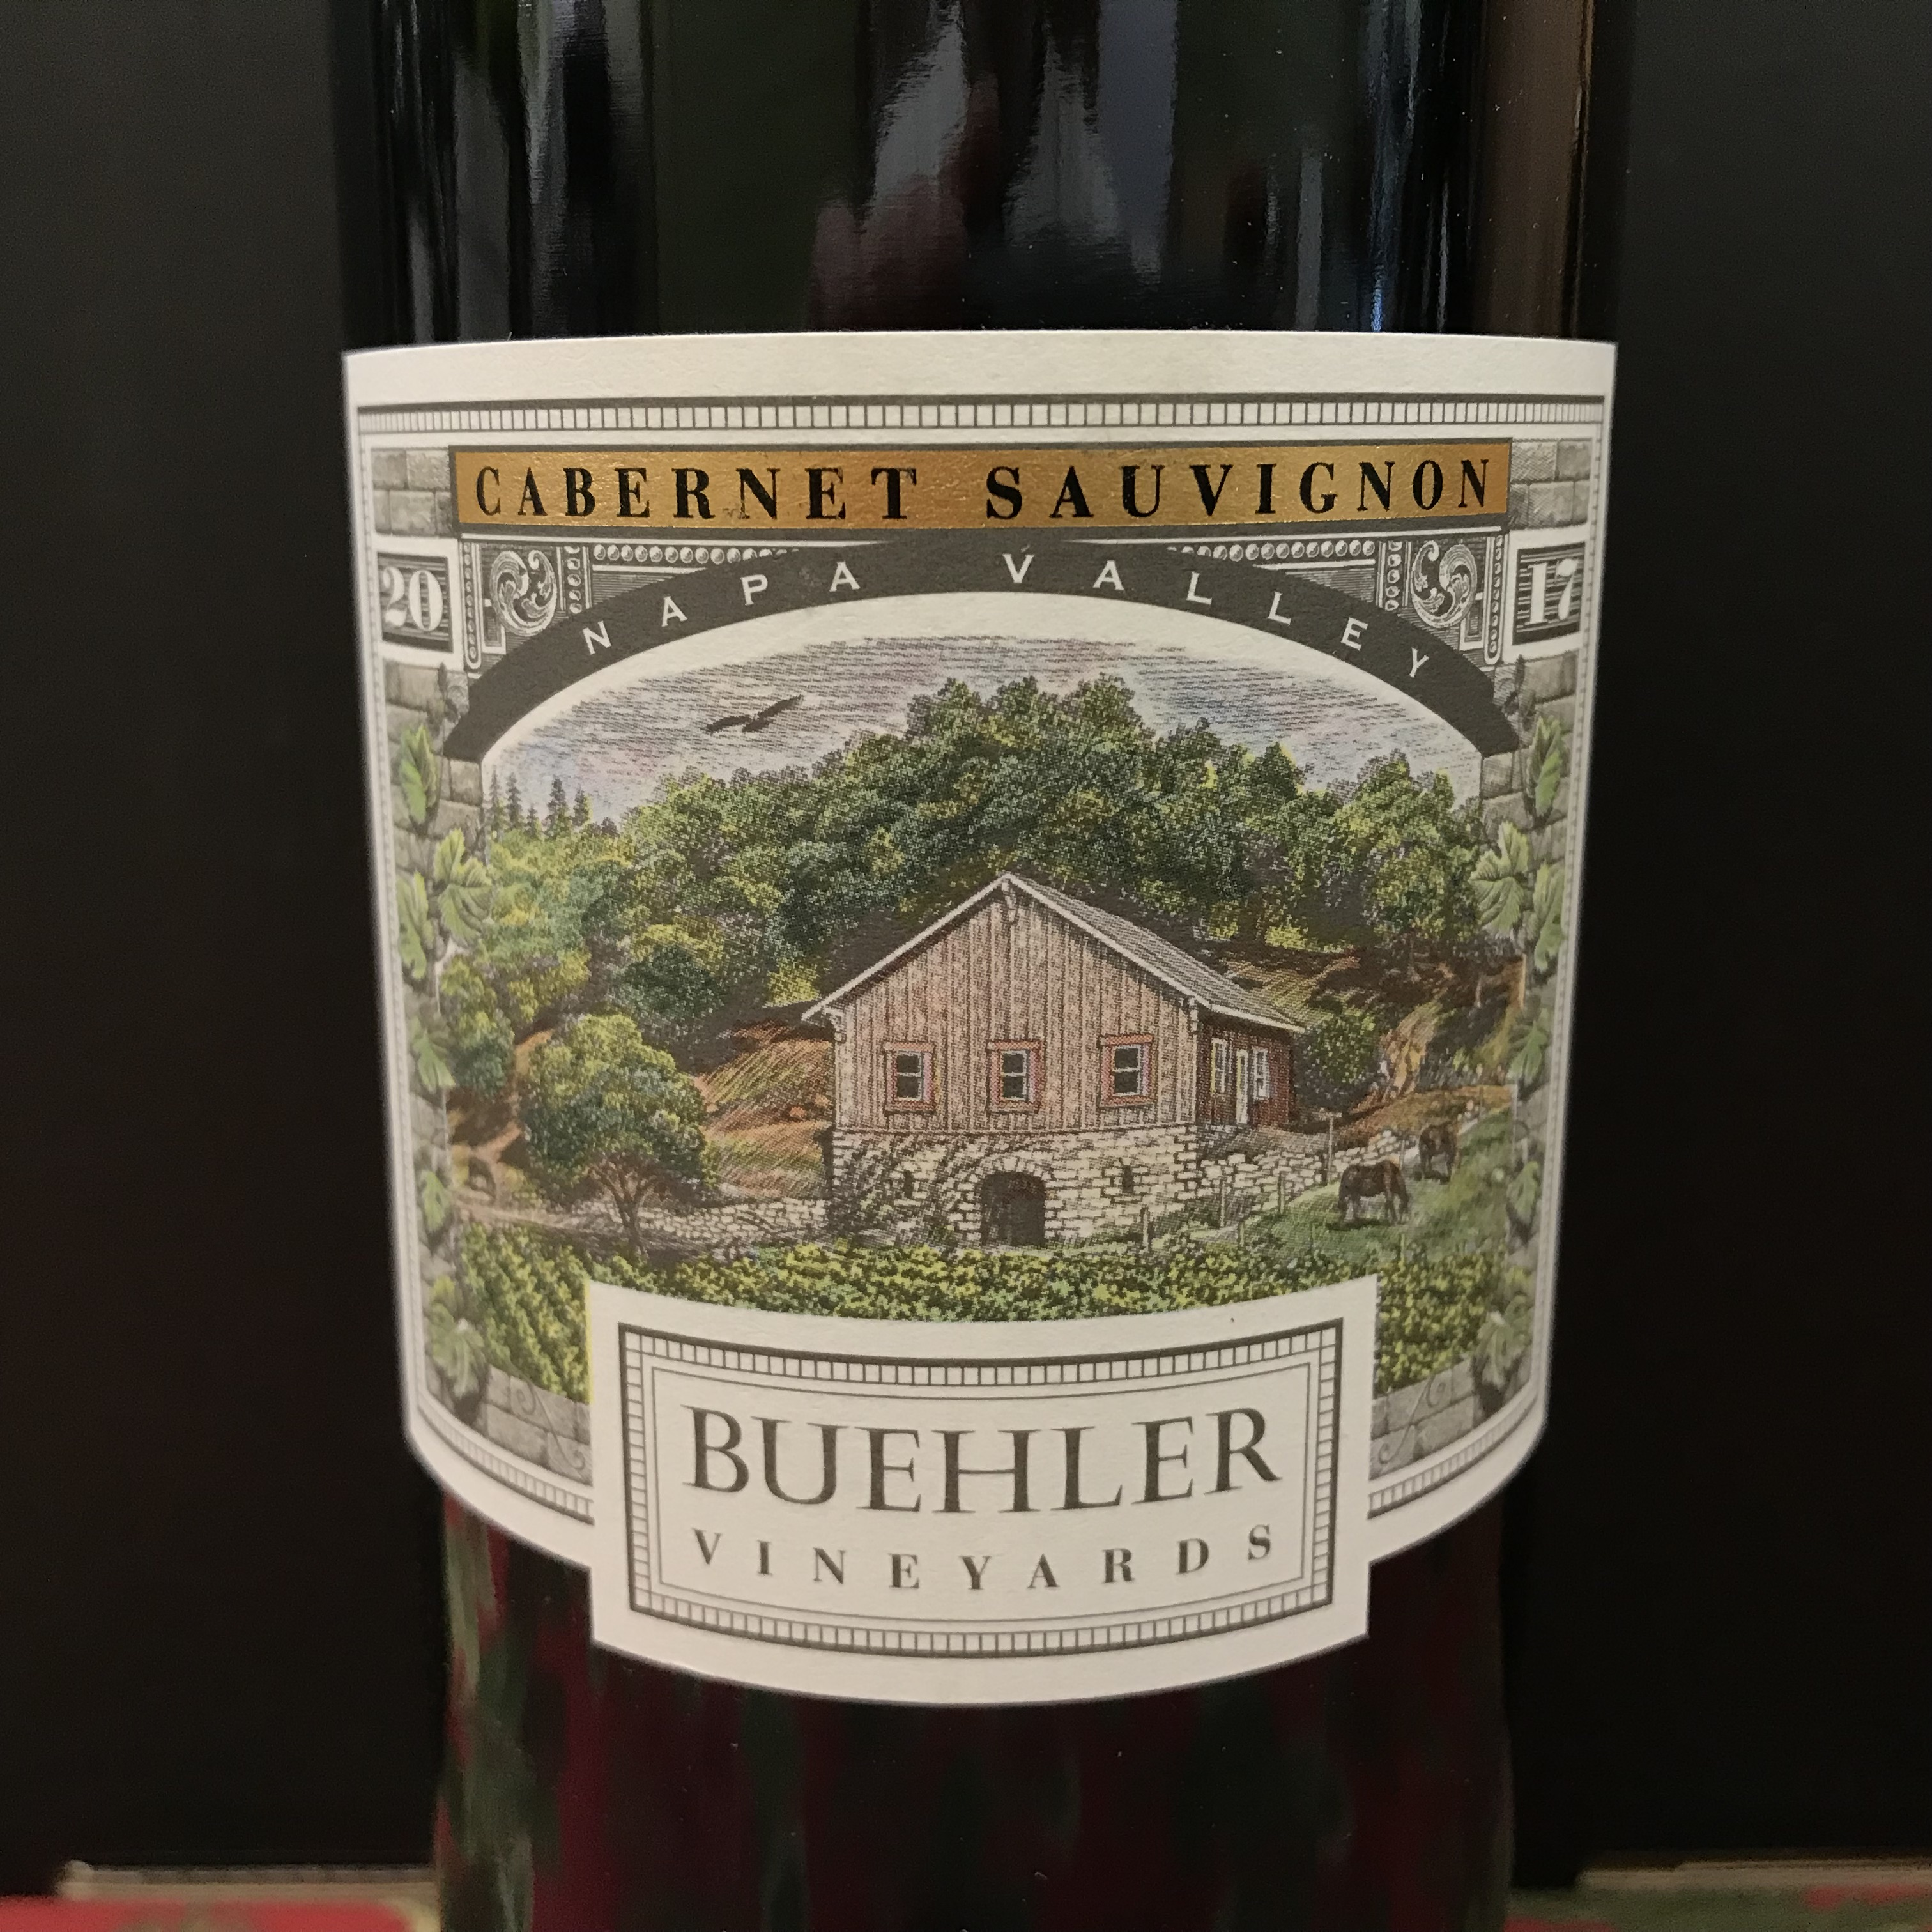 Buehler Vineyards Napa Valley Cabernet Sauvignon 2017